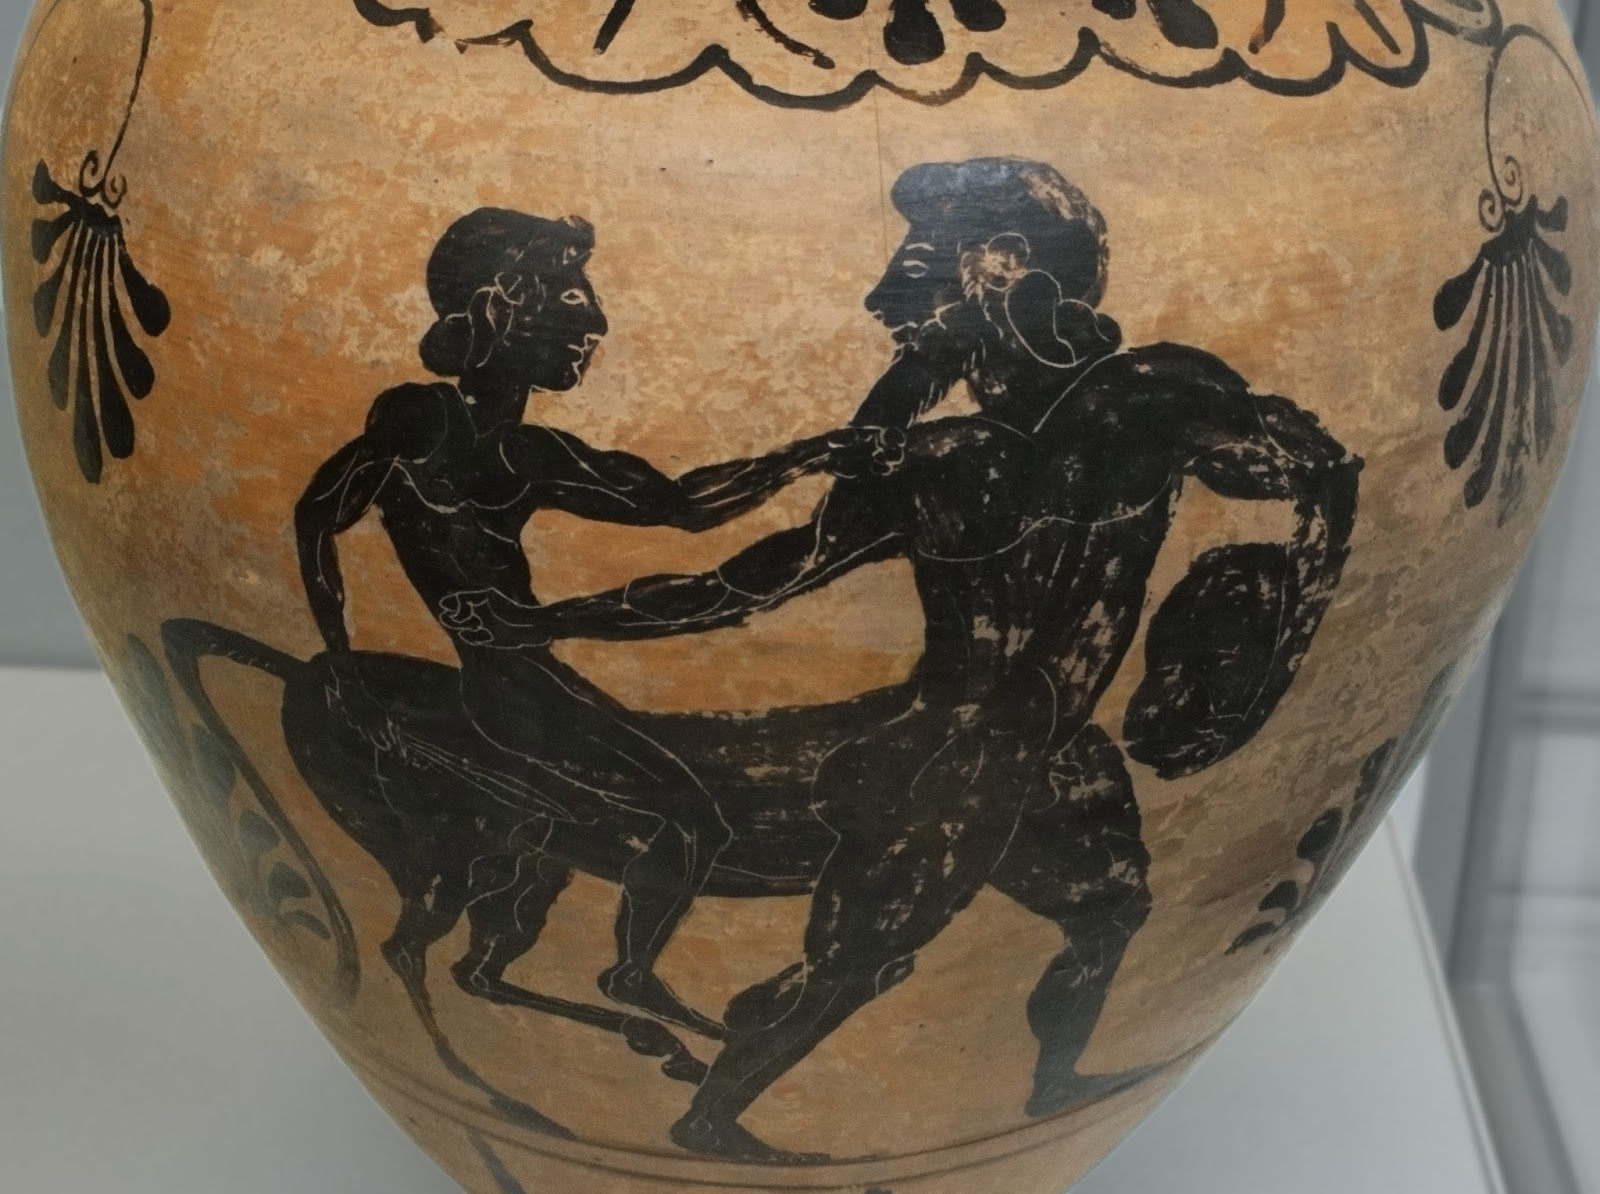 500BC-480BC. Amphora suggested to be Achilles riding Chiron. British Museum.jpg